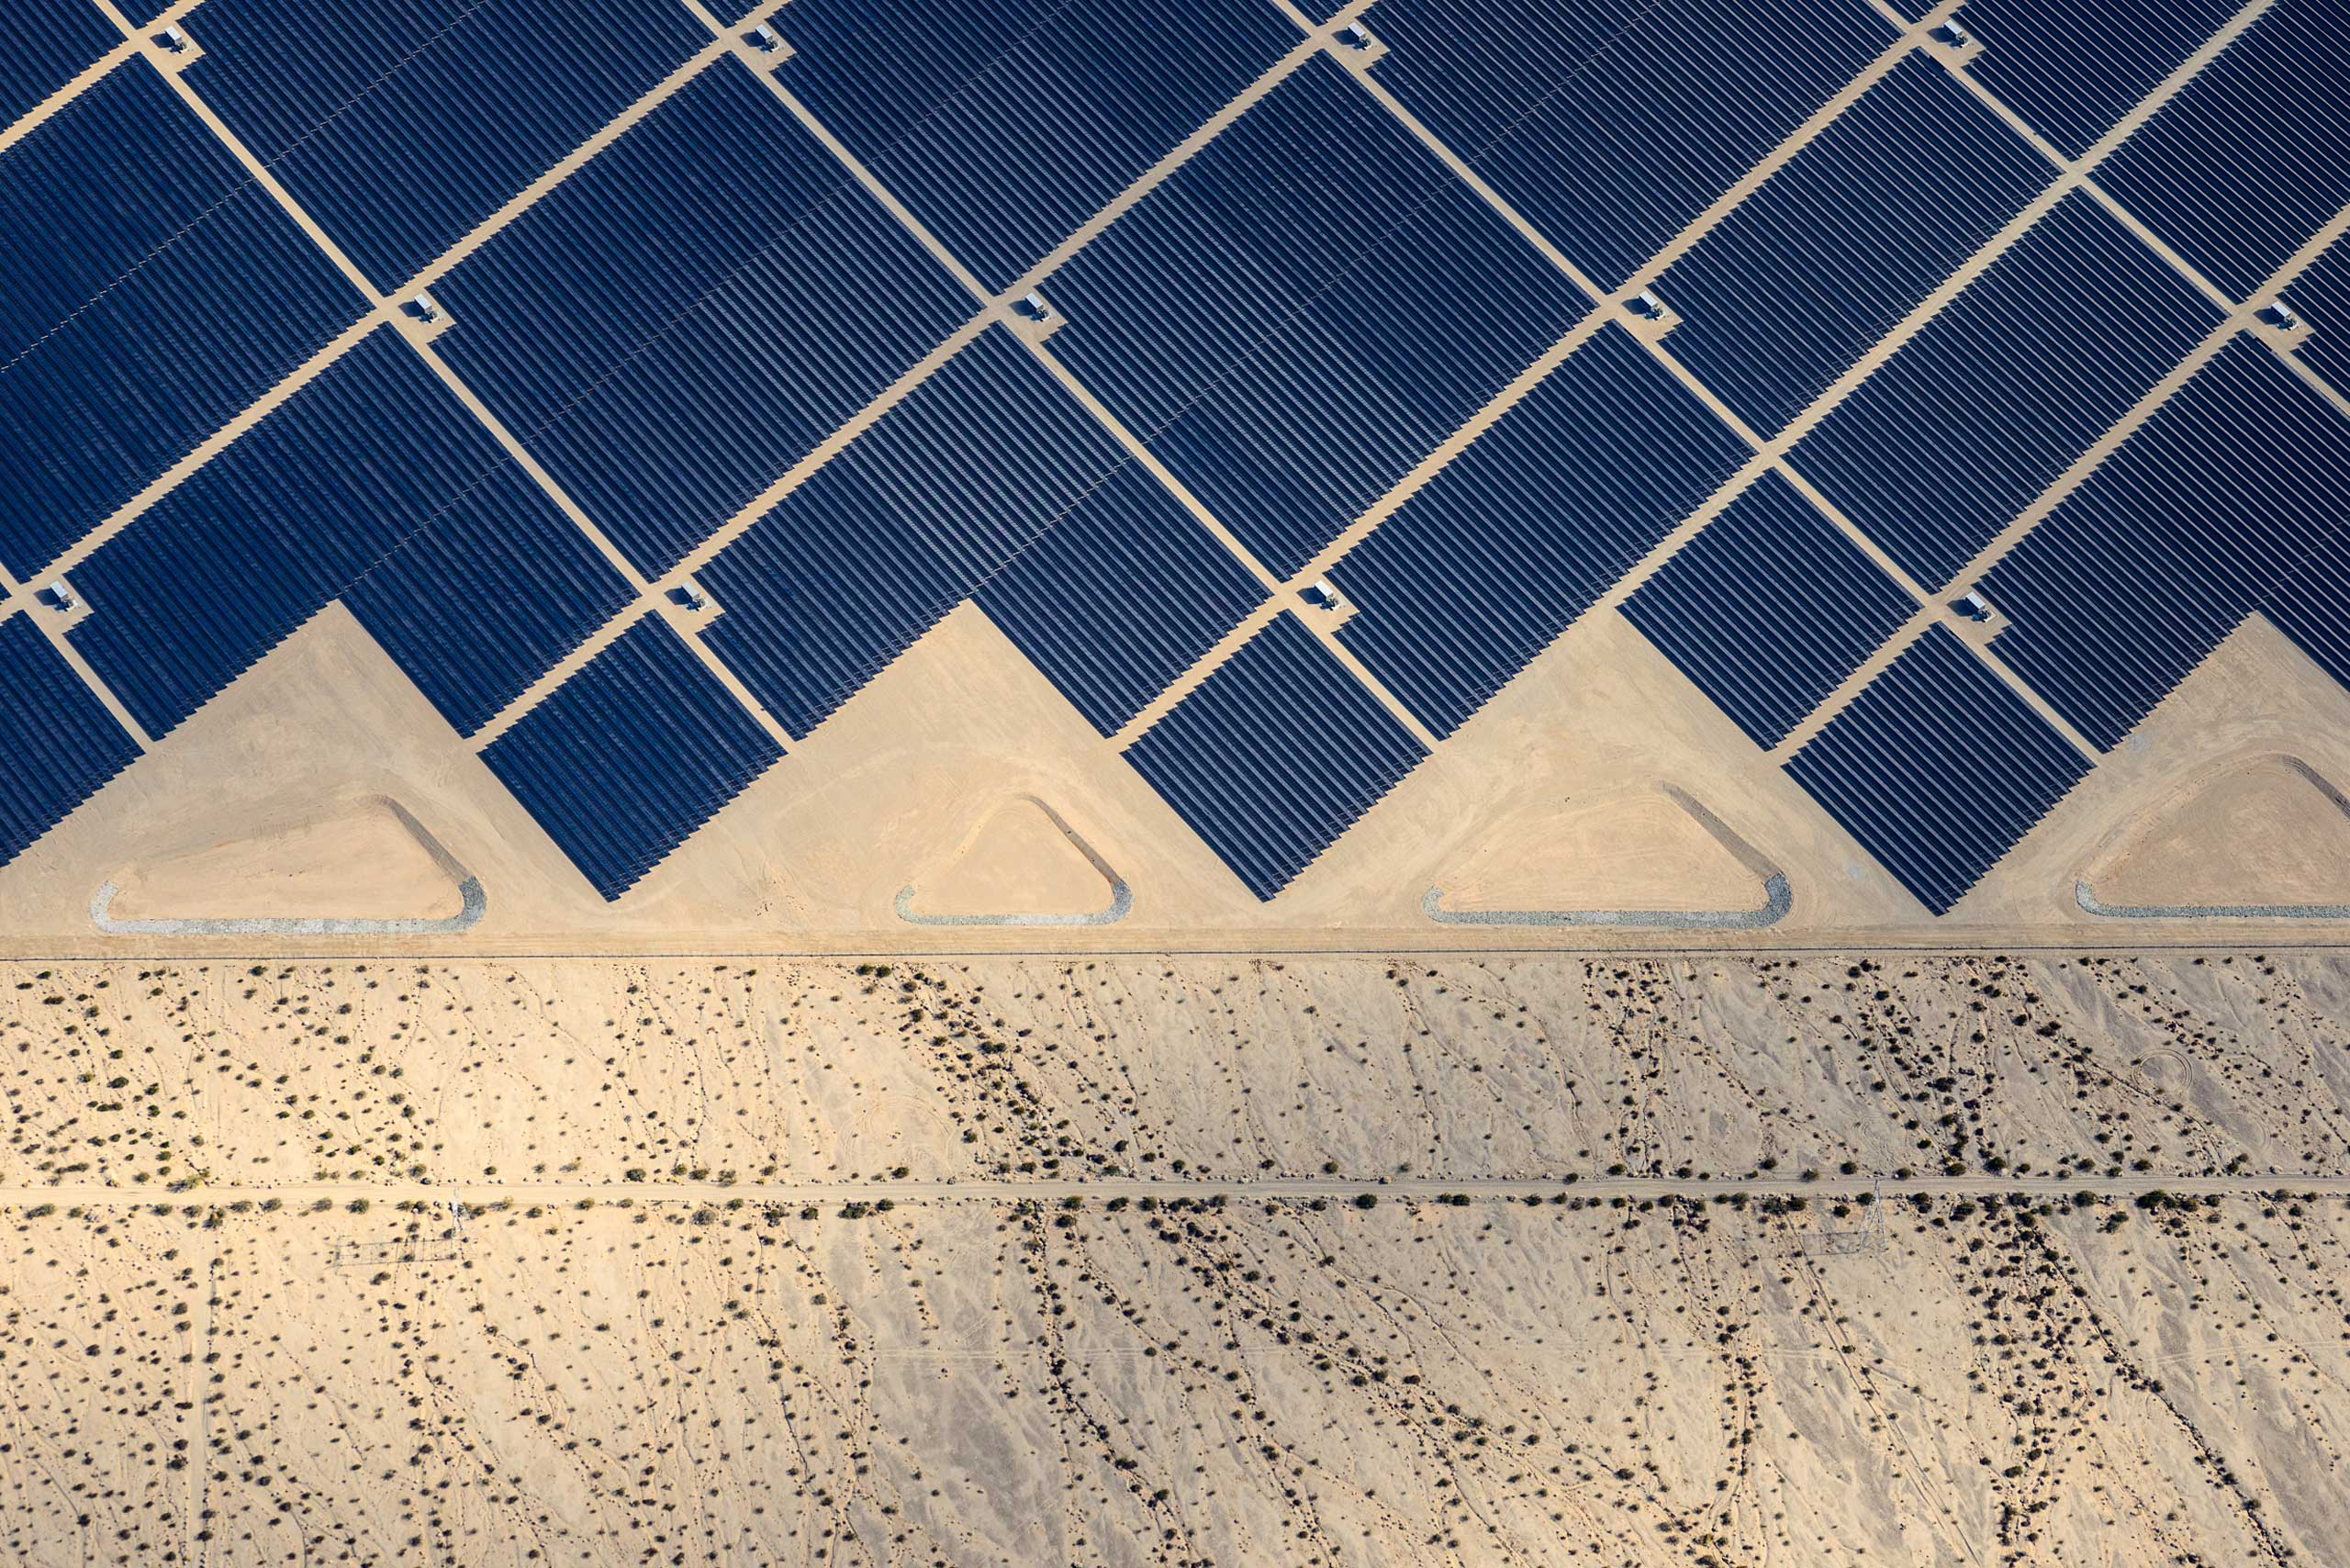 Desert Sunlight Solar Farm produces 550 megawatts of energy, equal to the output of a conventional power plant, near Palm Springs, Calif., where 8 million photovoltaic (PV) panels convert sunlight into electricity.